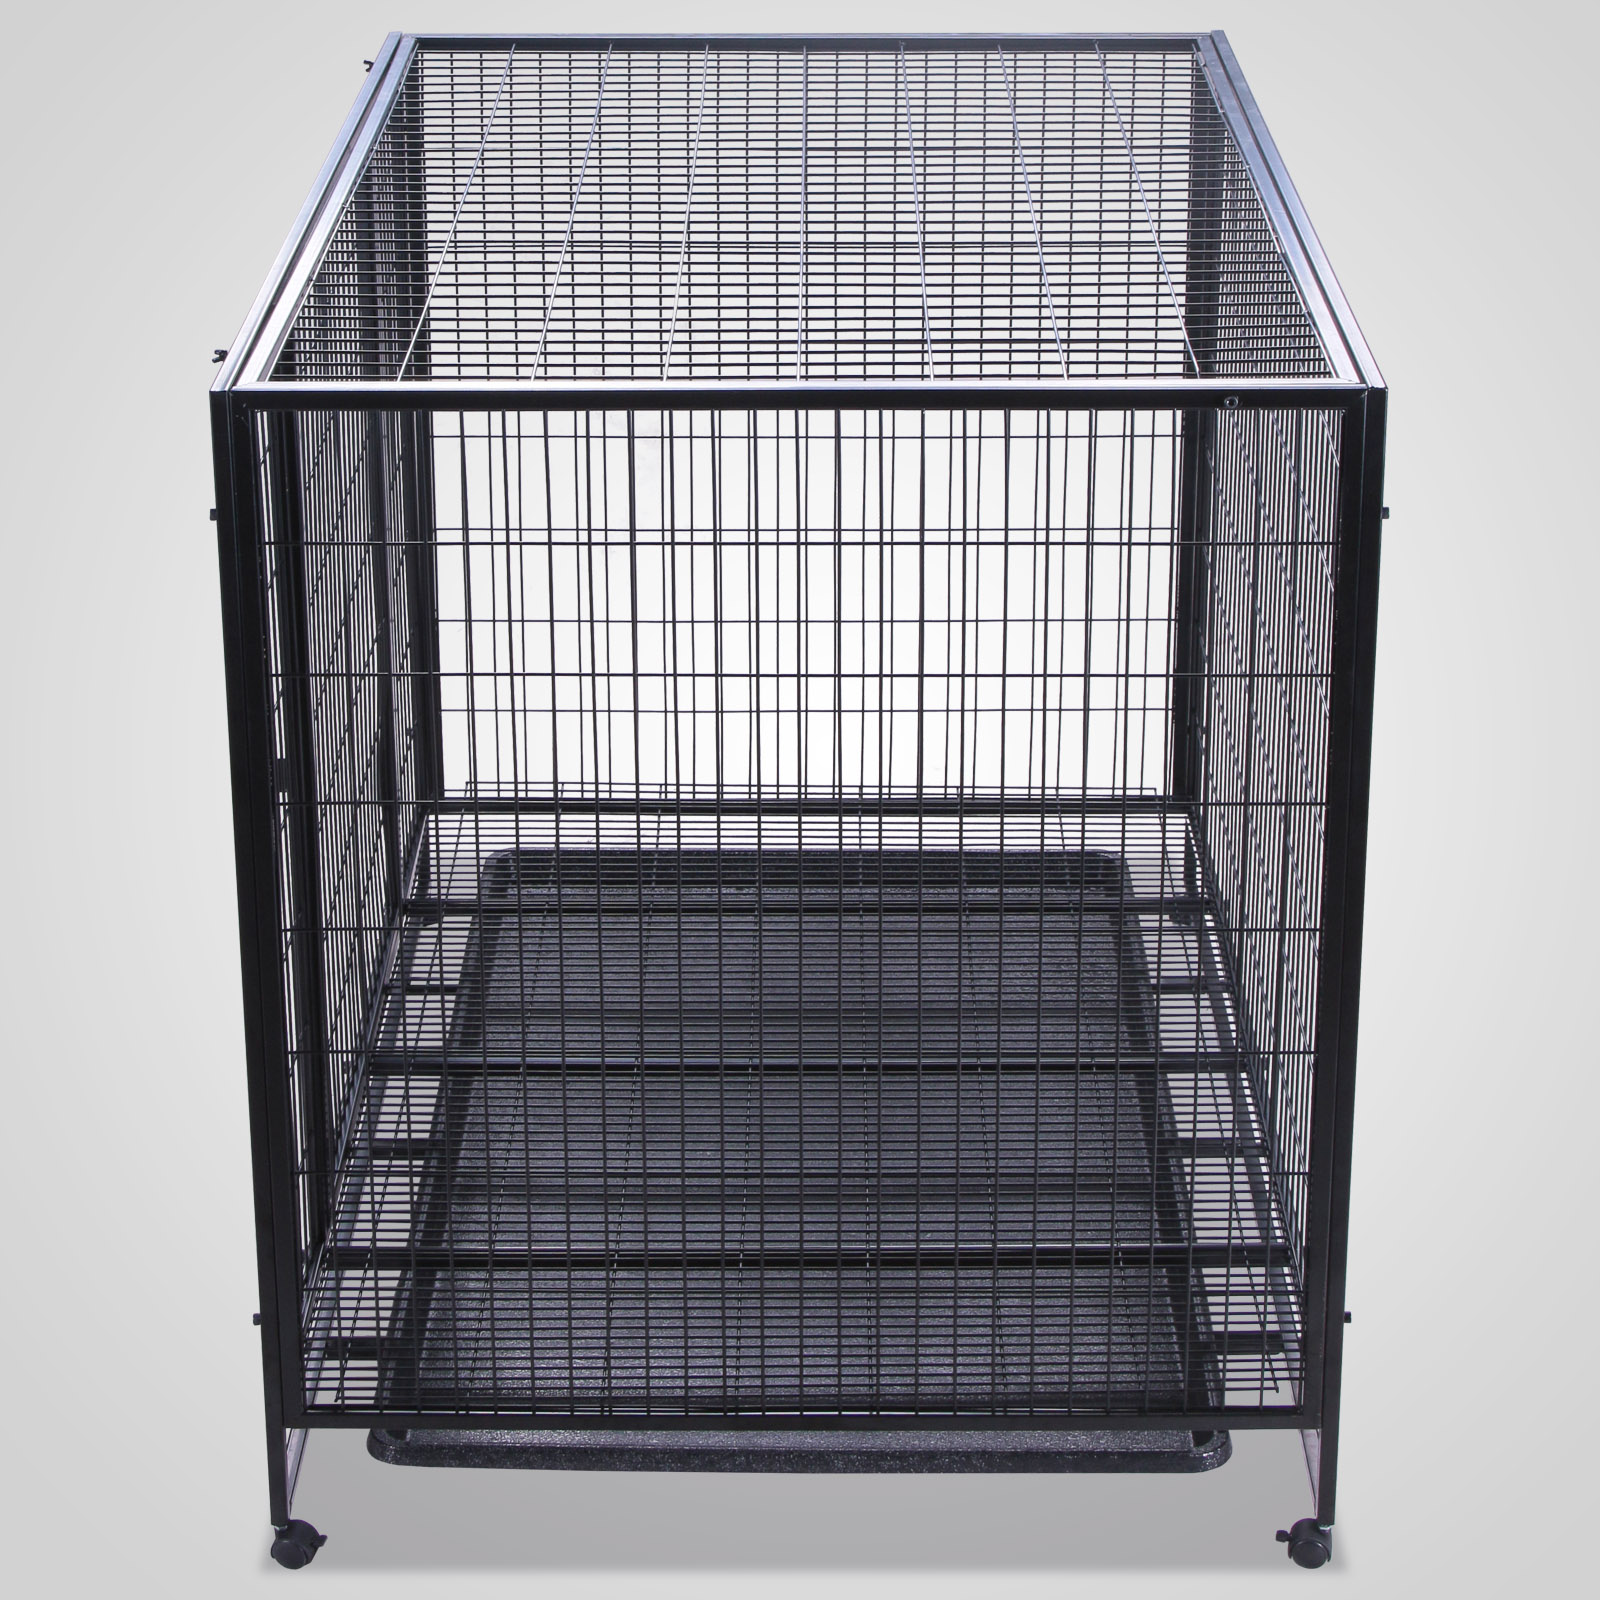 dog crate cage wtray crate metal newest design modern  -  dog crate kennel black heavy duty pet cage playpen tray pan and wheels